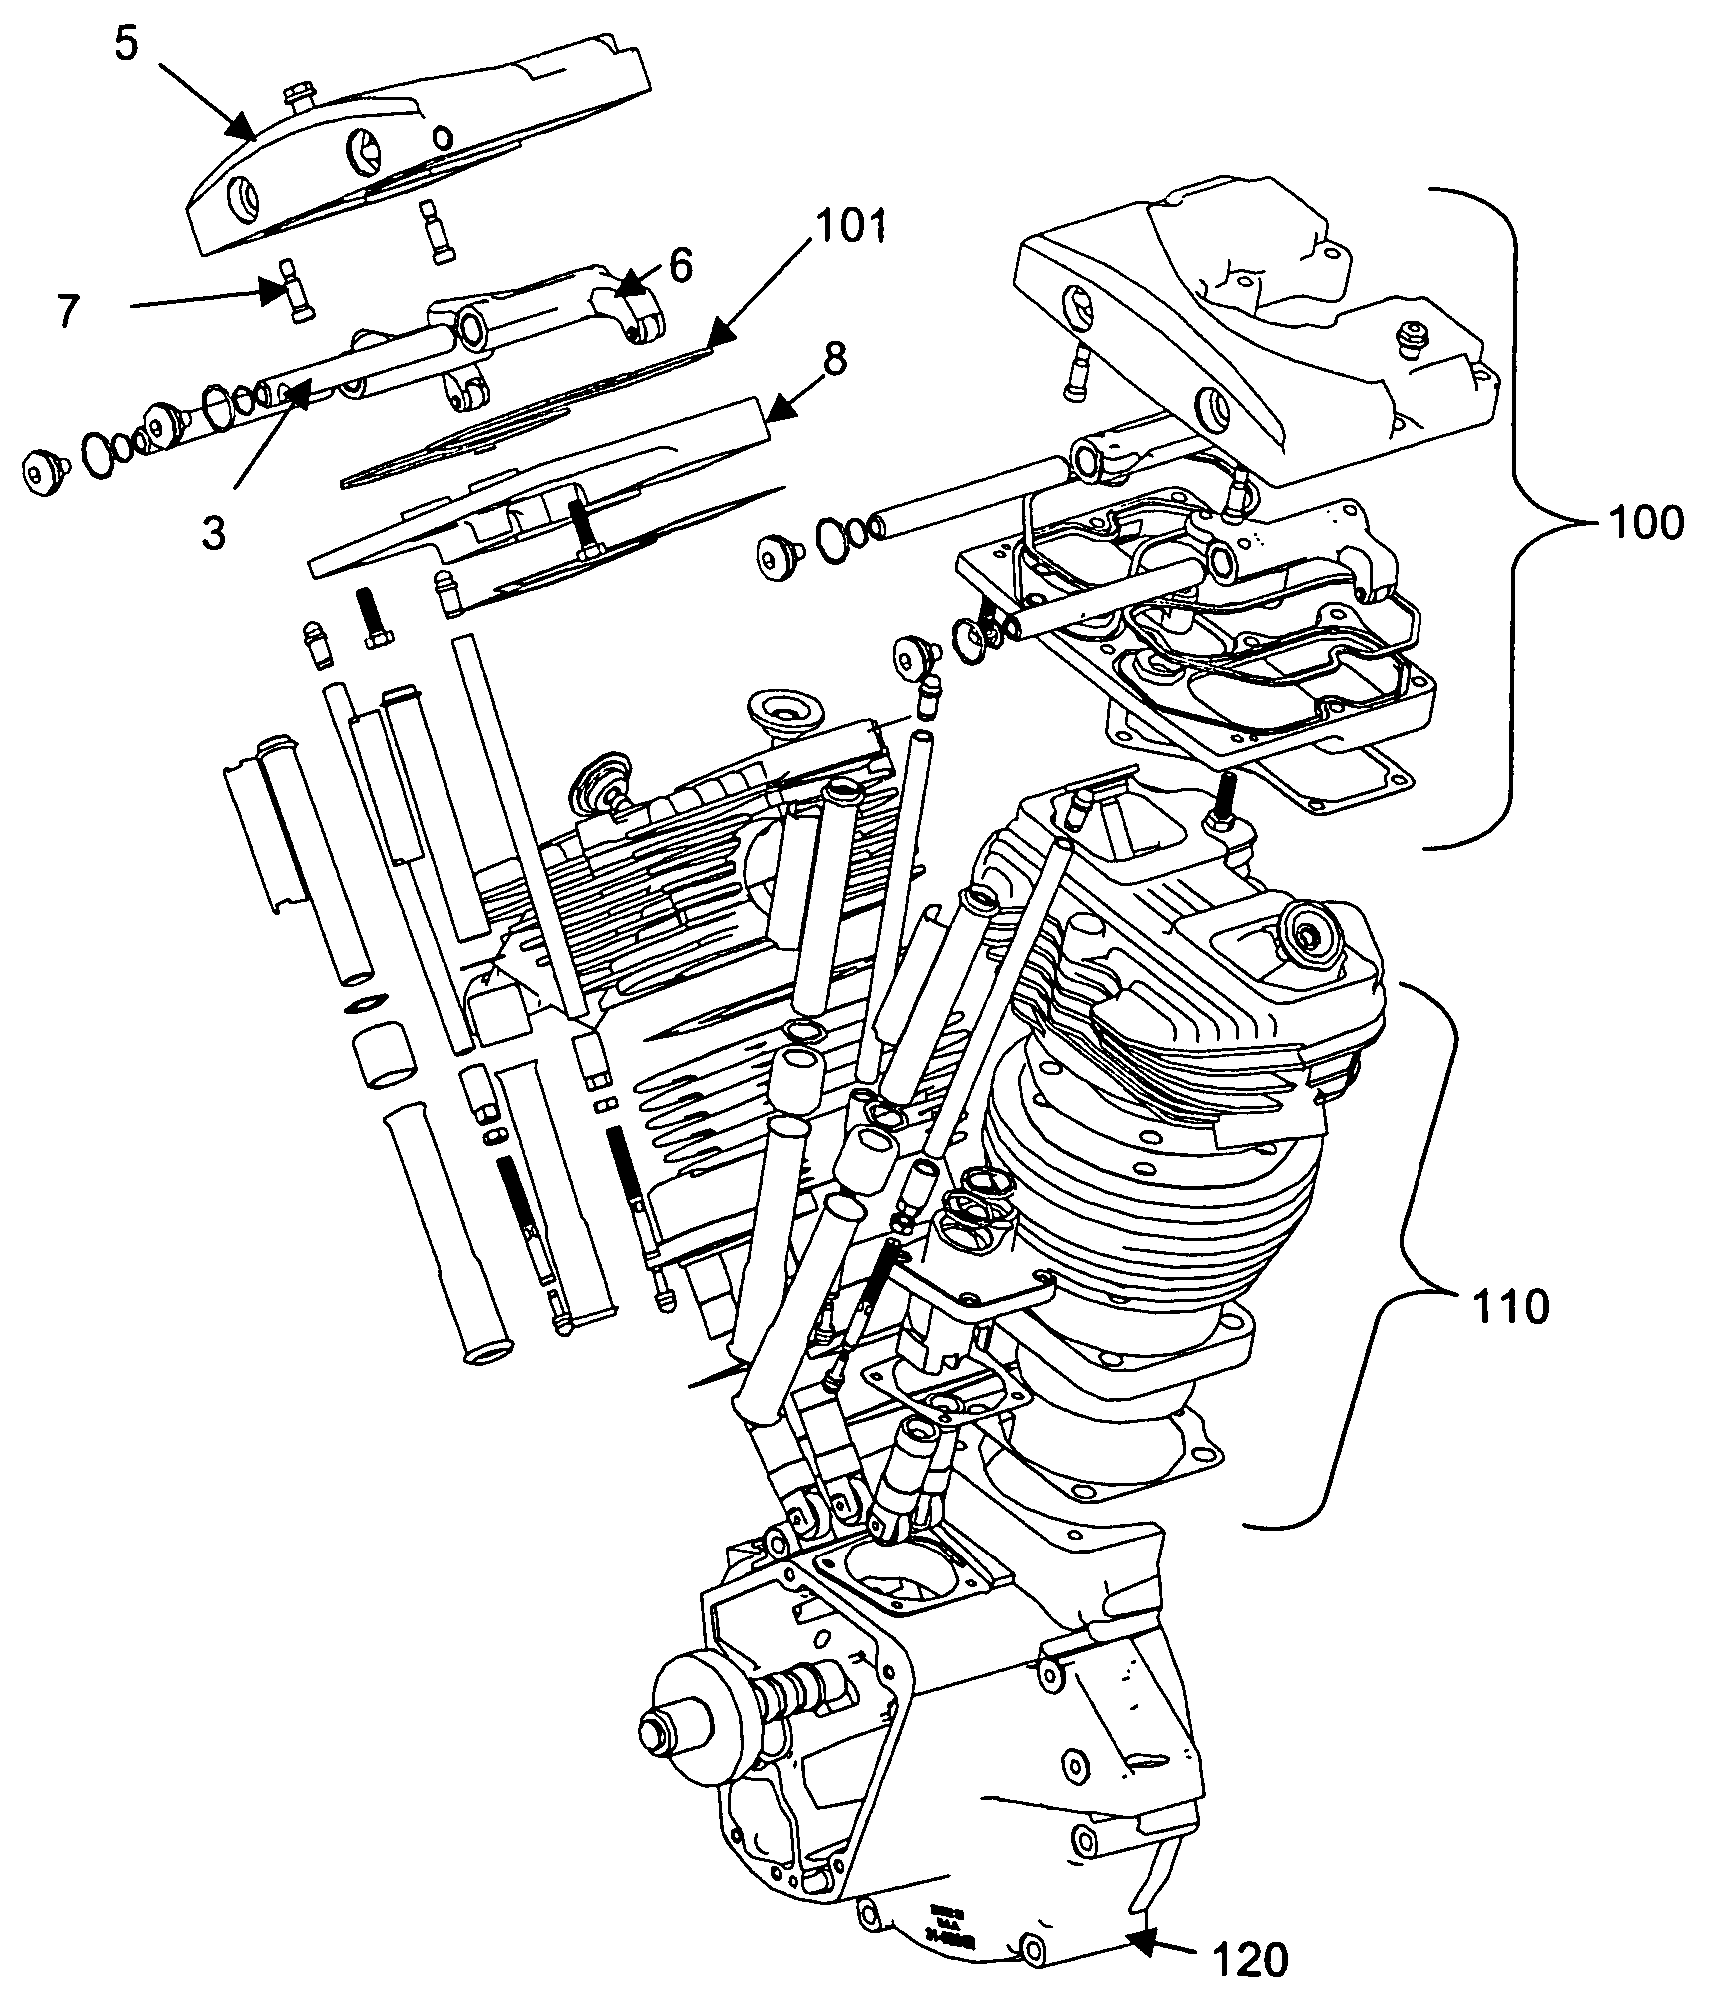 harley davidson shovelhead engine diagram get free image about wiring diagram